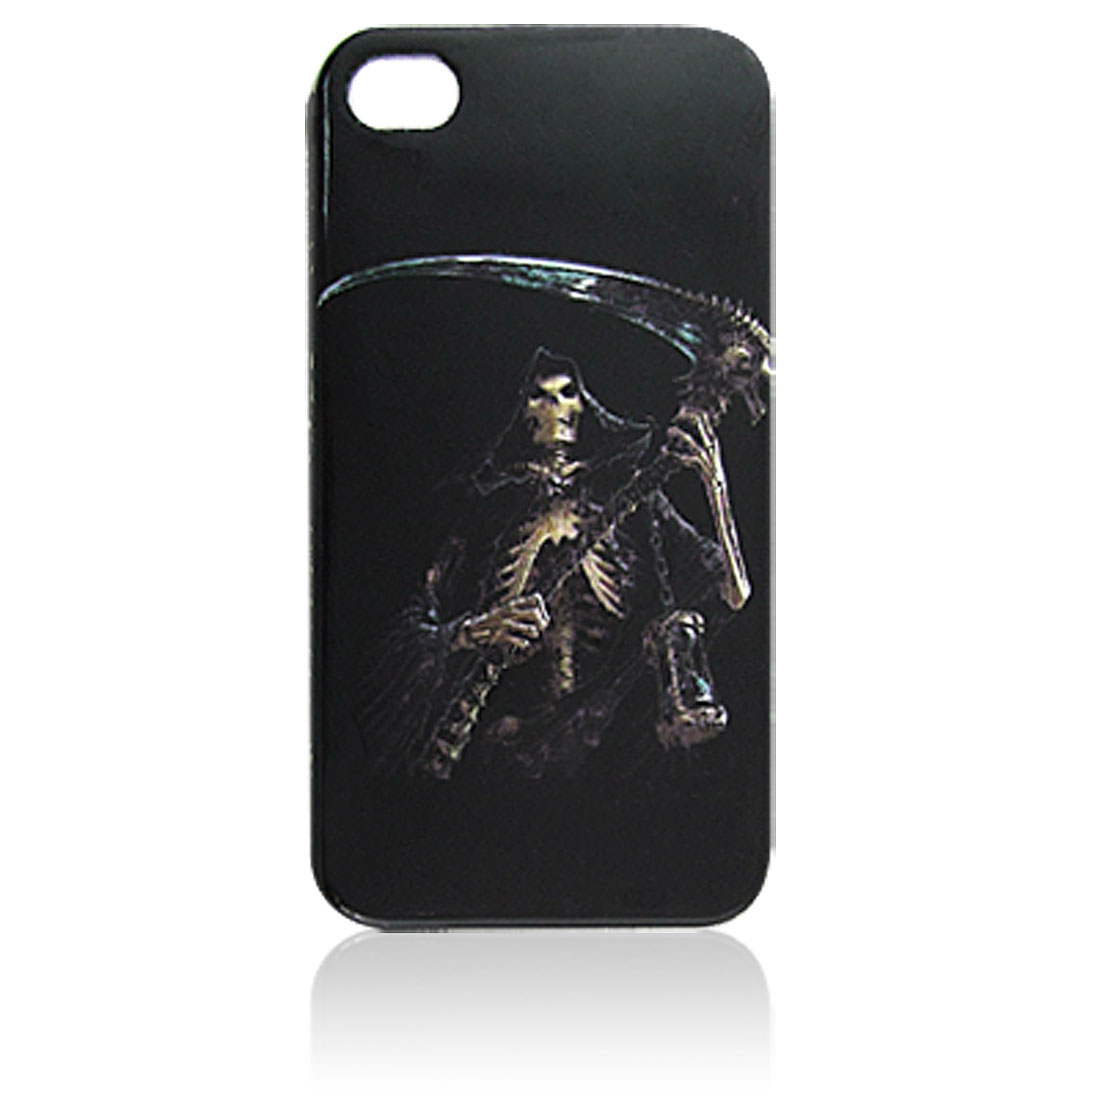 Angel of Death Pattern Plastic IMD Back Cover Guard for iPhone 4 4G